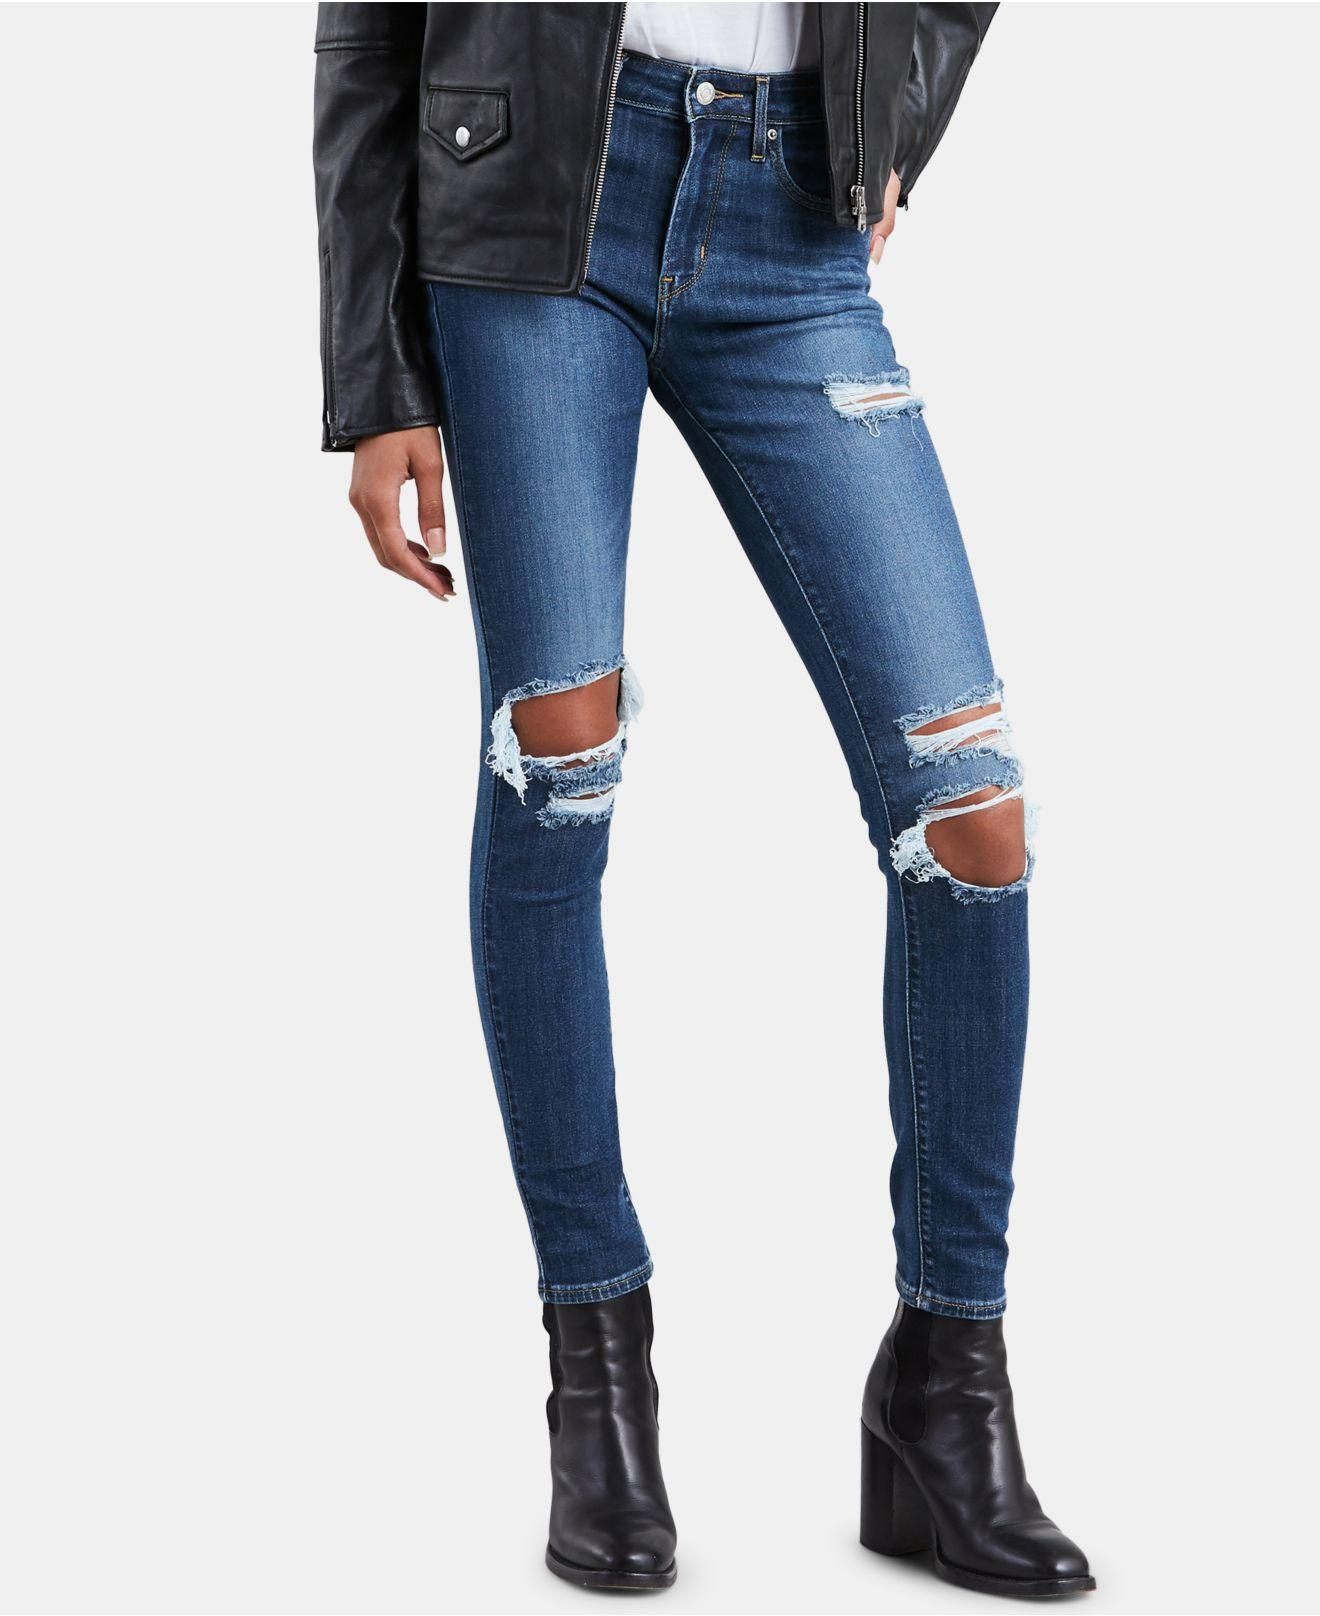 8a55782b Lyst - Levi's ® 721 High-rise Skinny Jeans in Blue